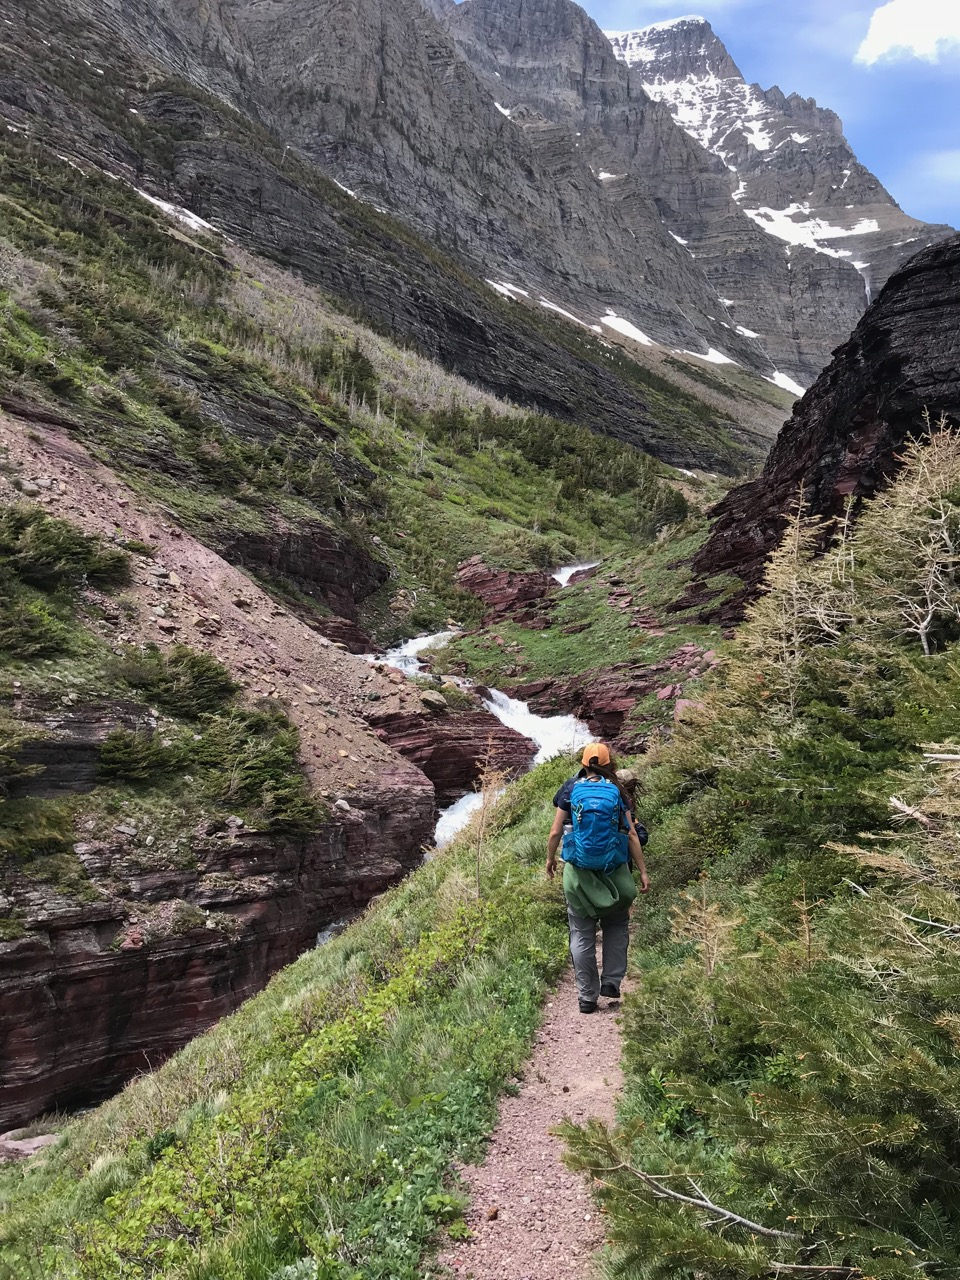 Hiking up the pass!